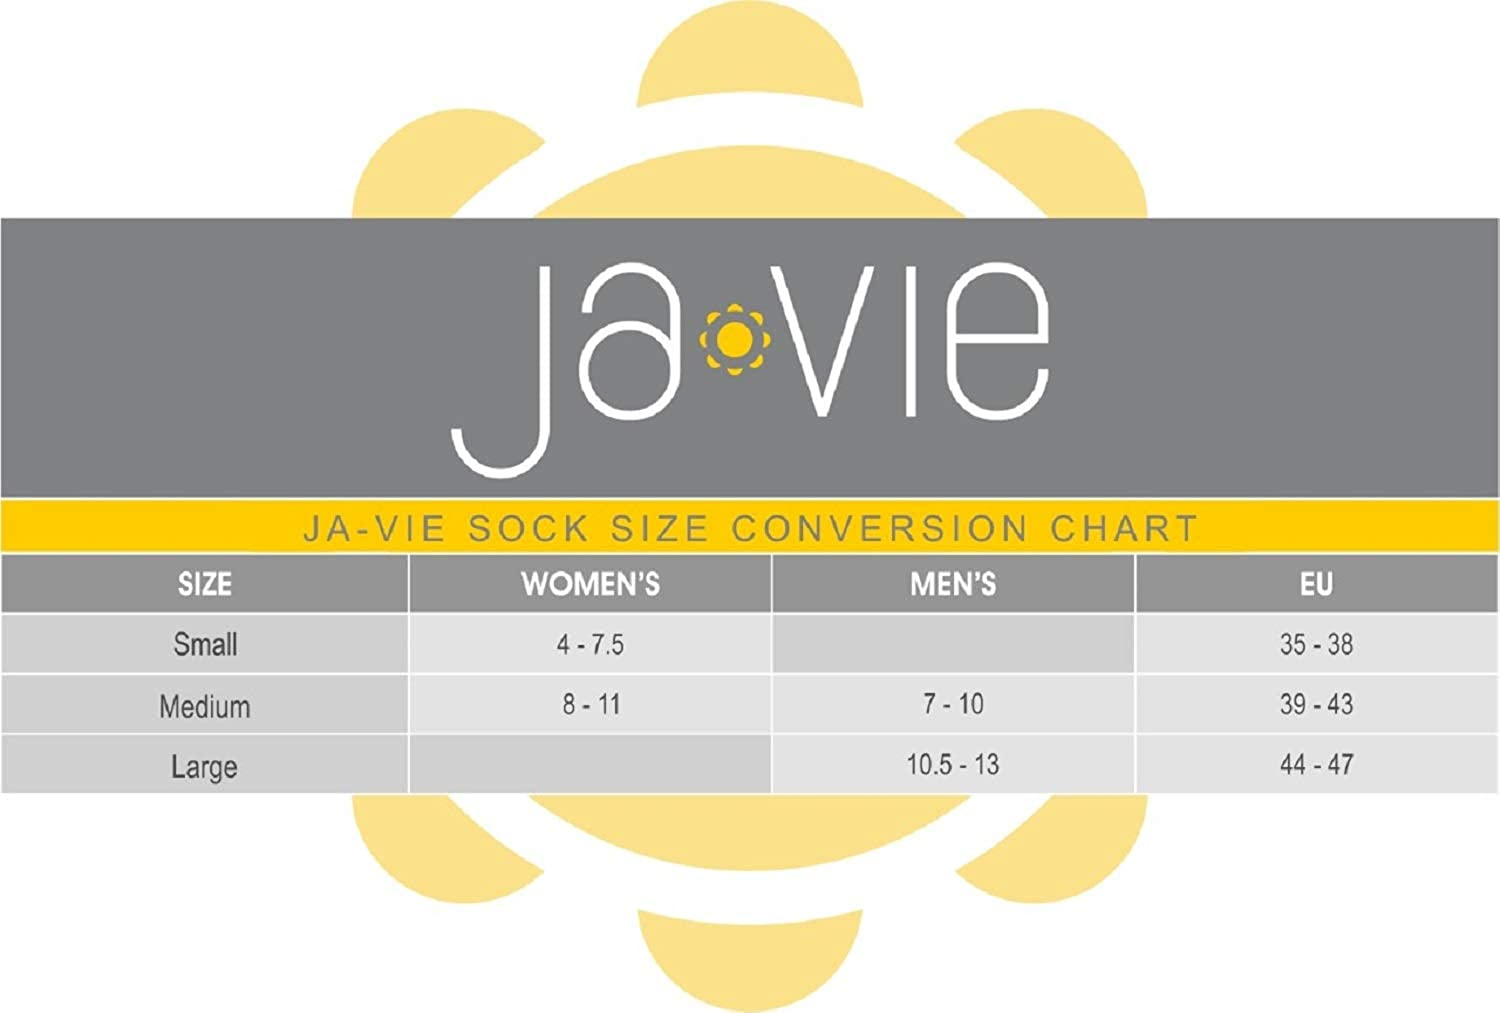 JAVIE Comfy V-toe Tabi Socks 76/% Merino Wool Compression Socks for Women /& Men